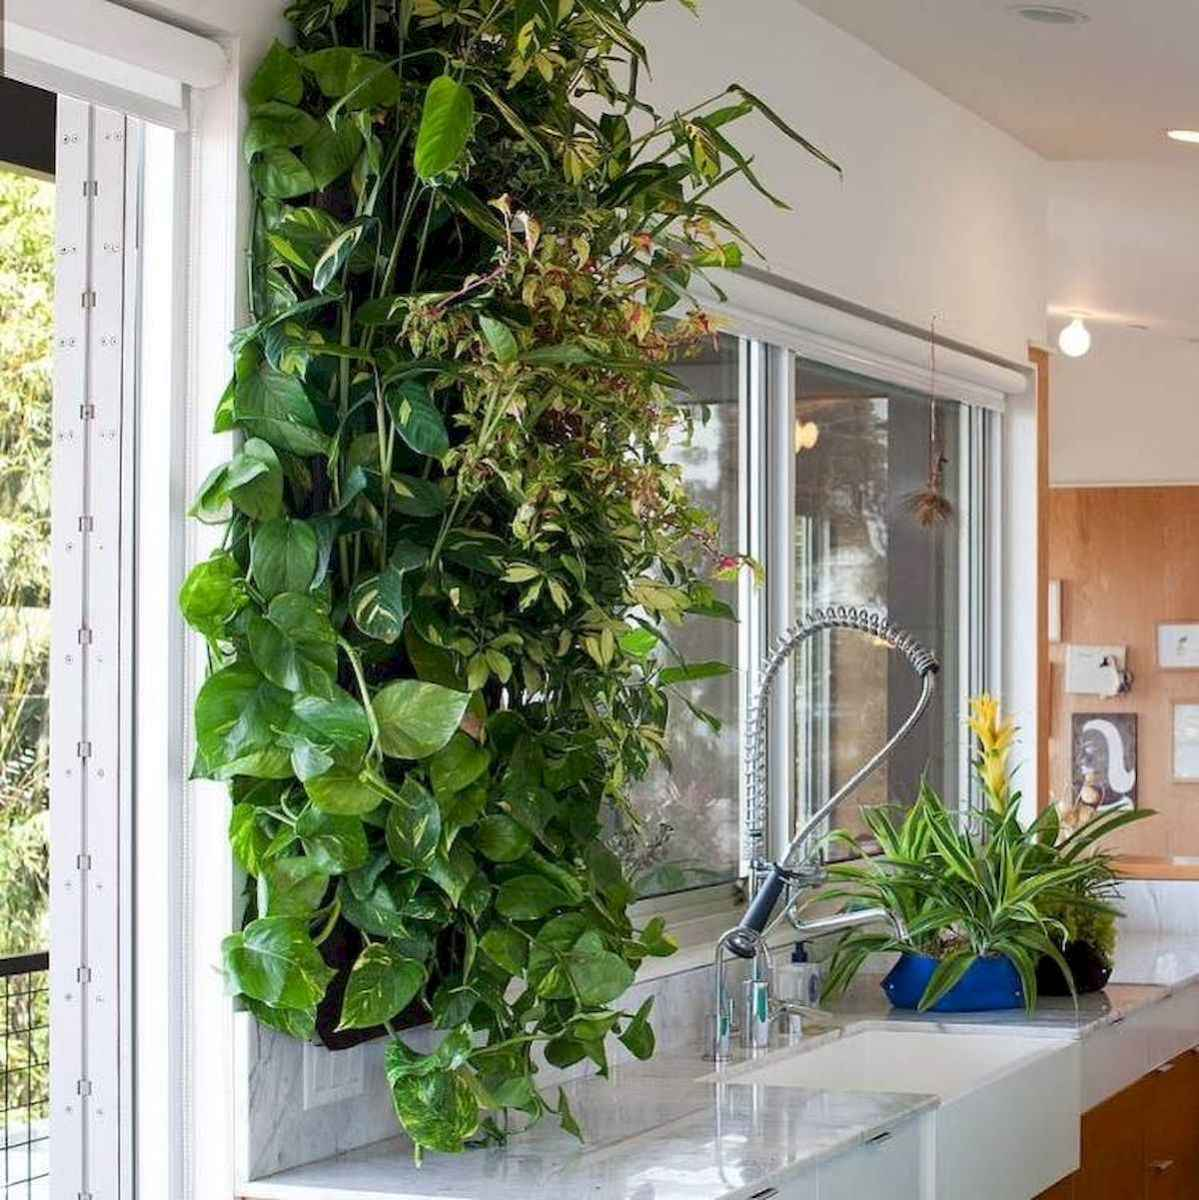 40 beautiful living wall planter garden ideas decorations and remodel (21)